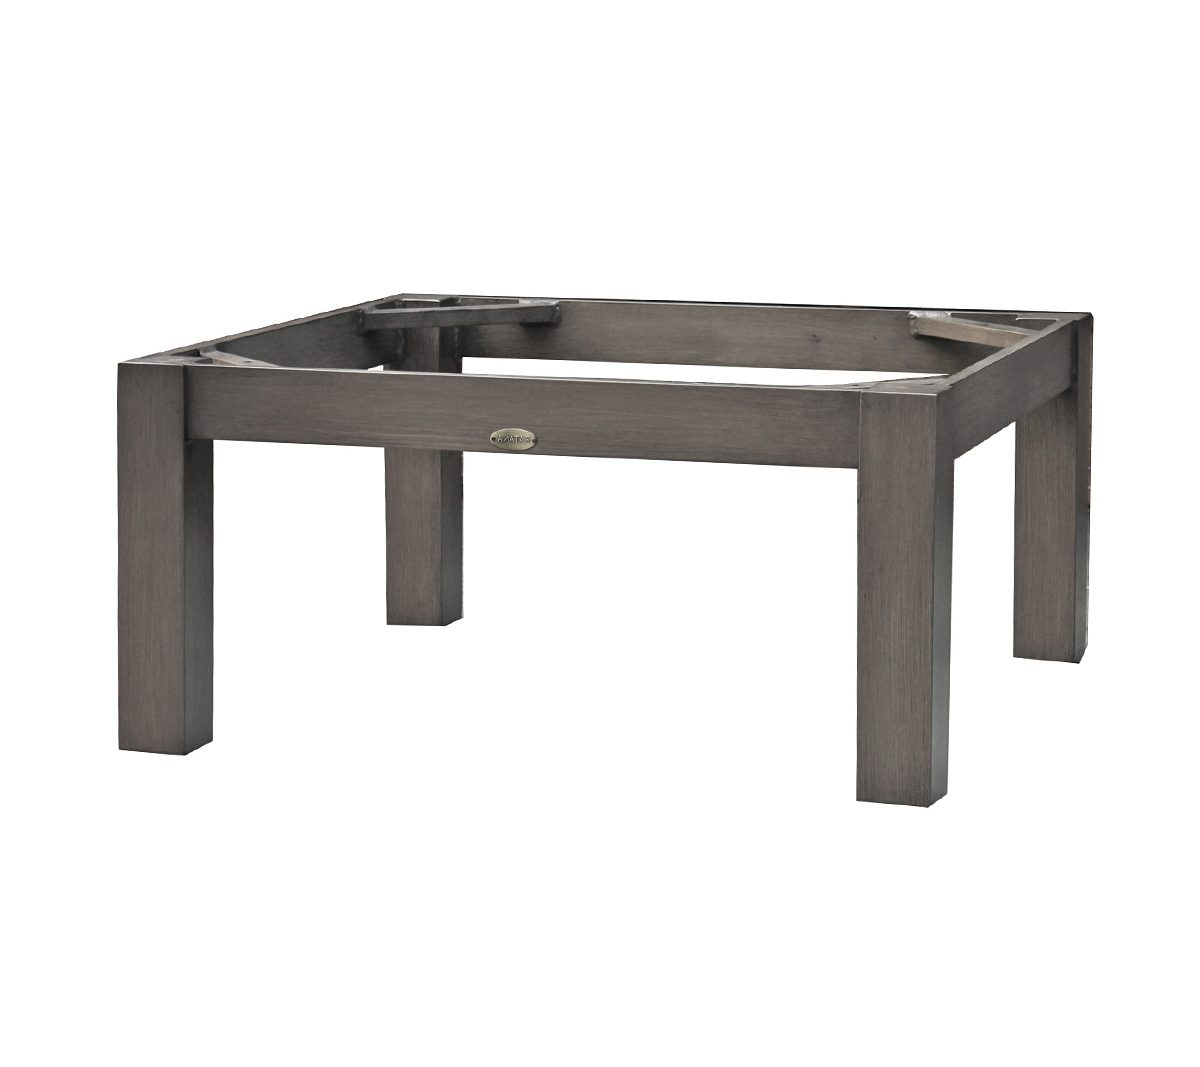 Montreal 32 SQ Coffee Table Base FN50394CSASG